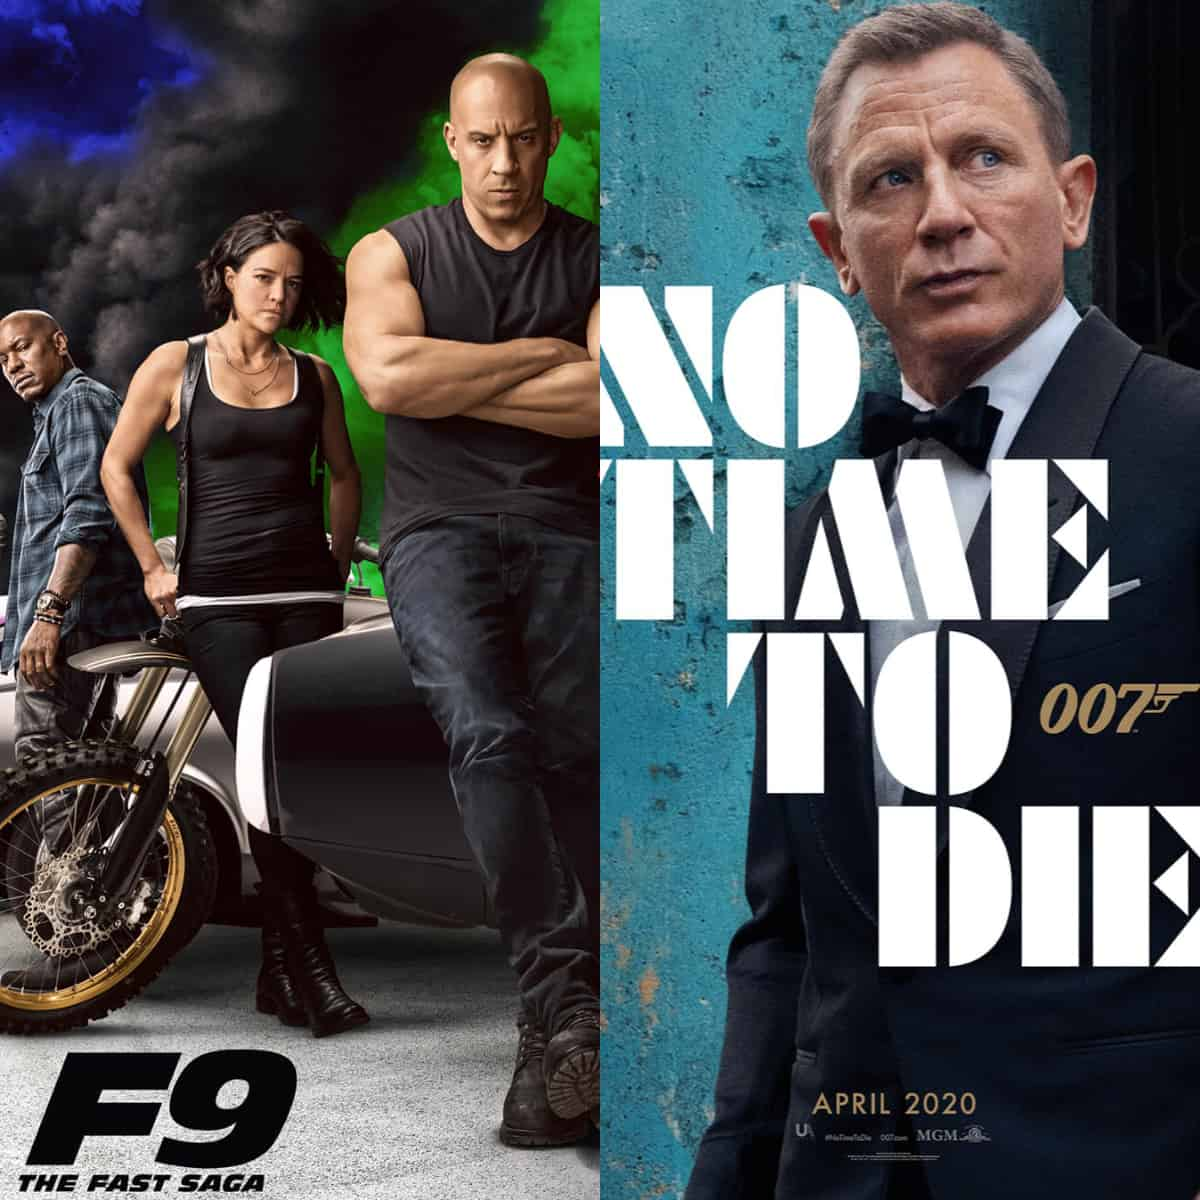 Fast and Furious 007